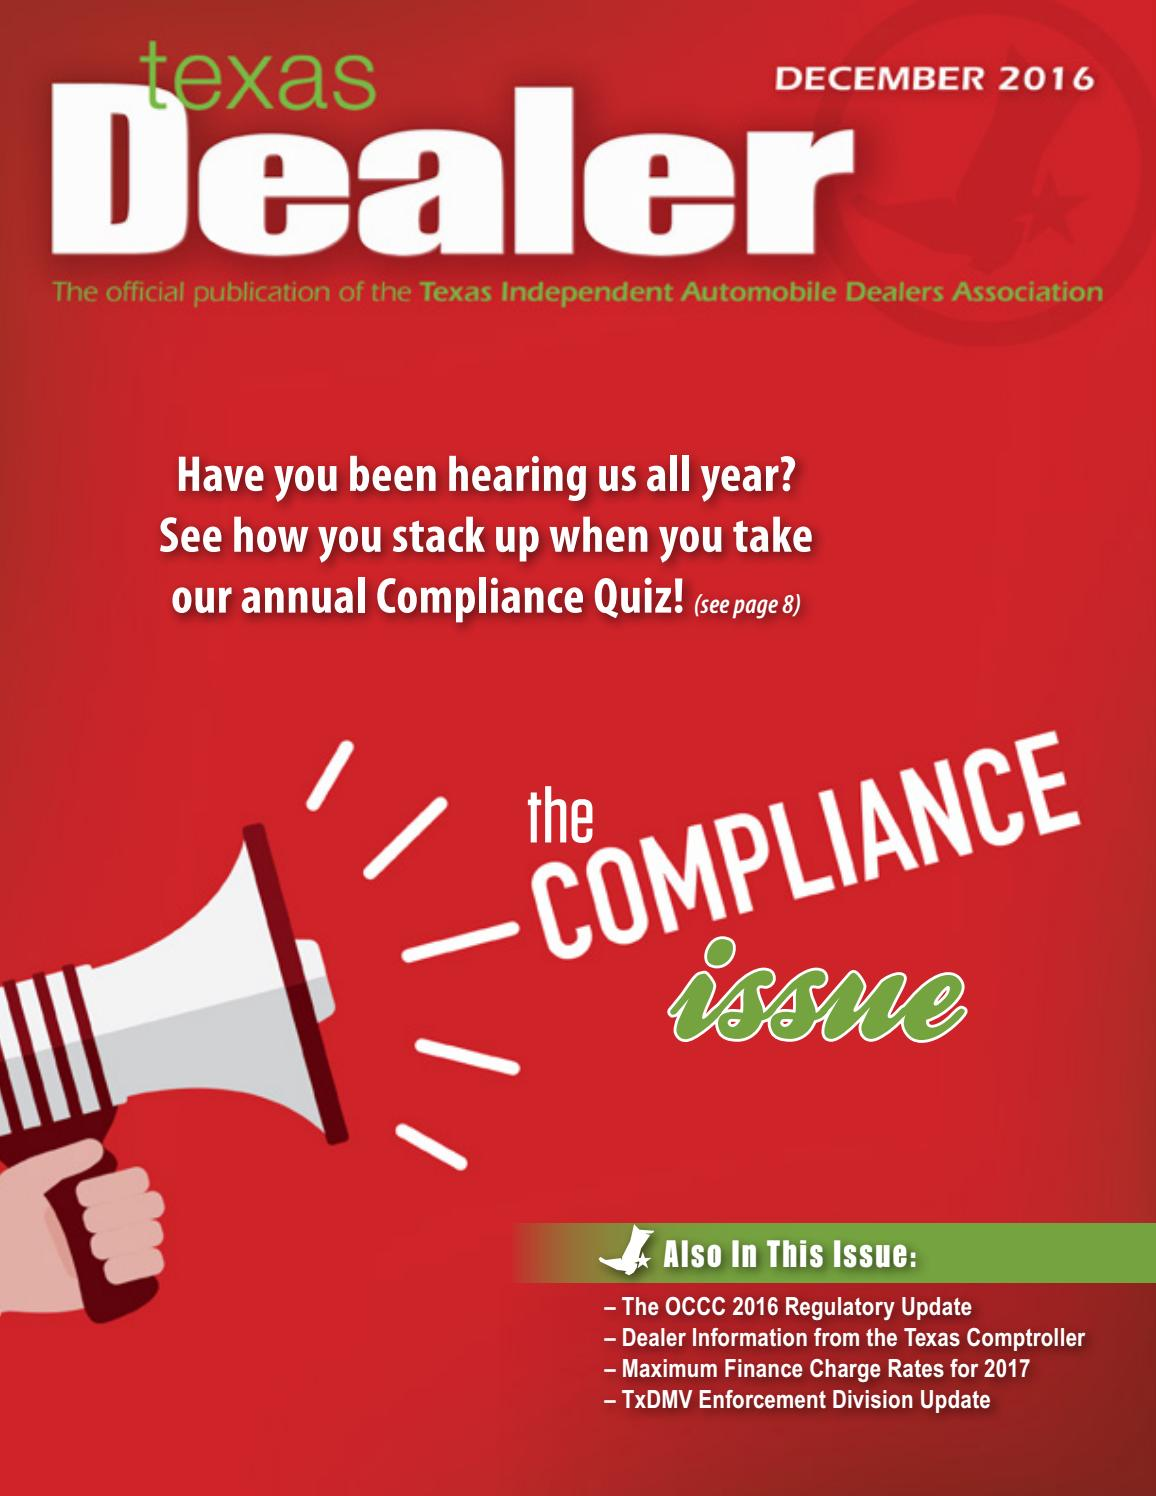 texas dealer by texas independent auto dealers texas dealer 2016 by texas independent auto dealers association issuu